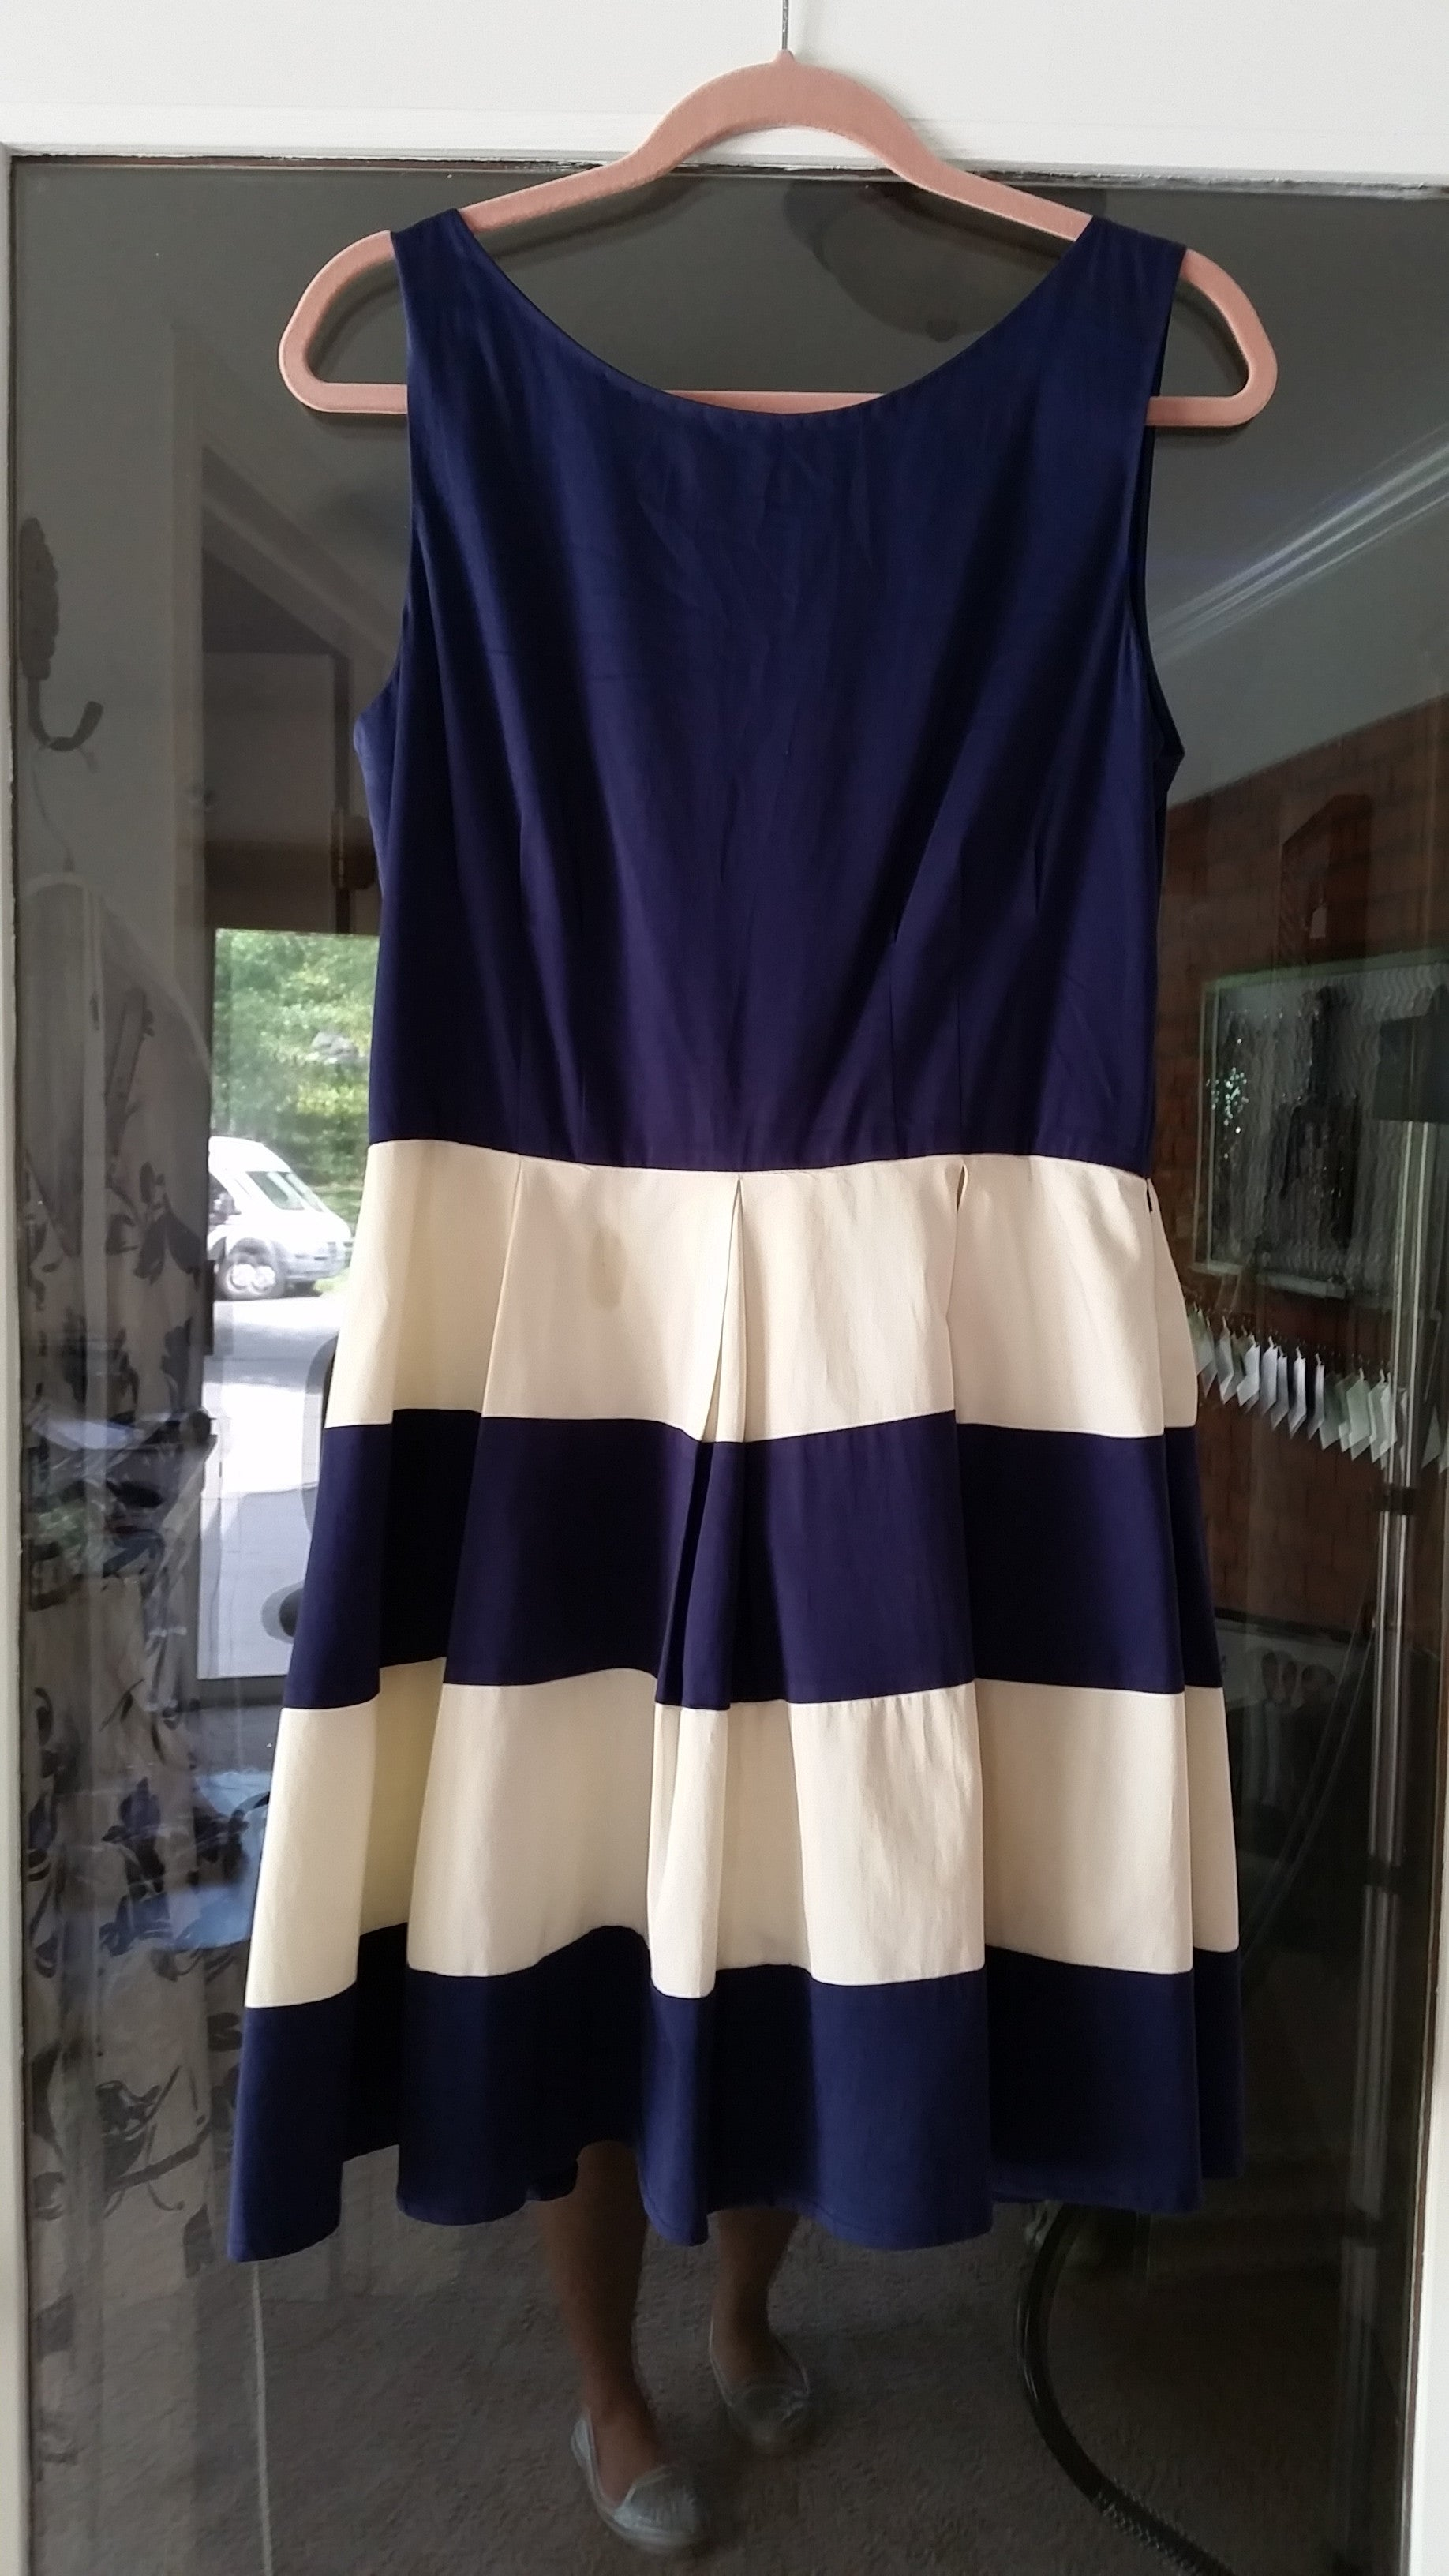 RETURNED TO LENDER ON 7/18/18. Blue Midi Sleeveless Boat Dress by Kate Spade, Size 12